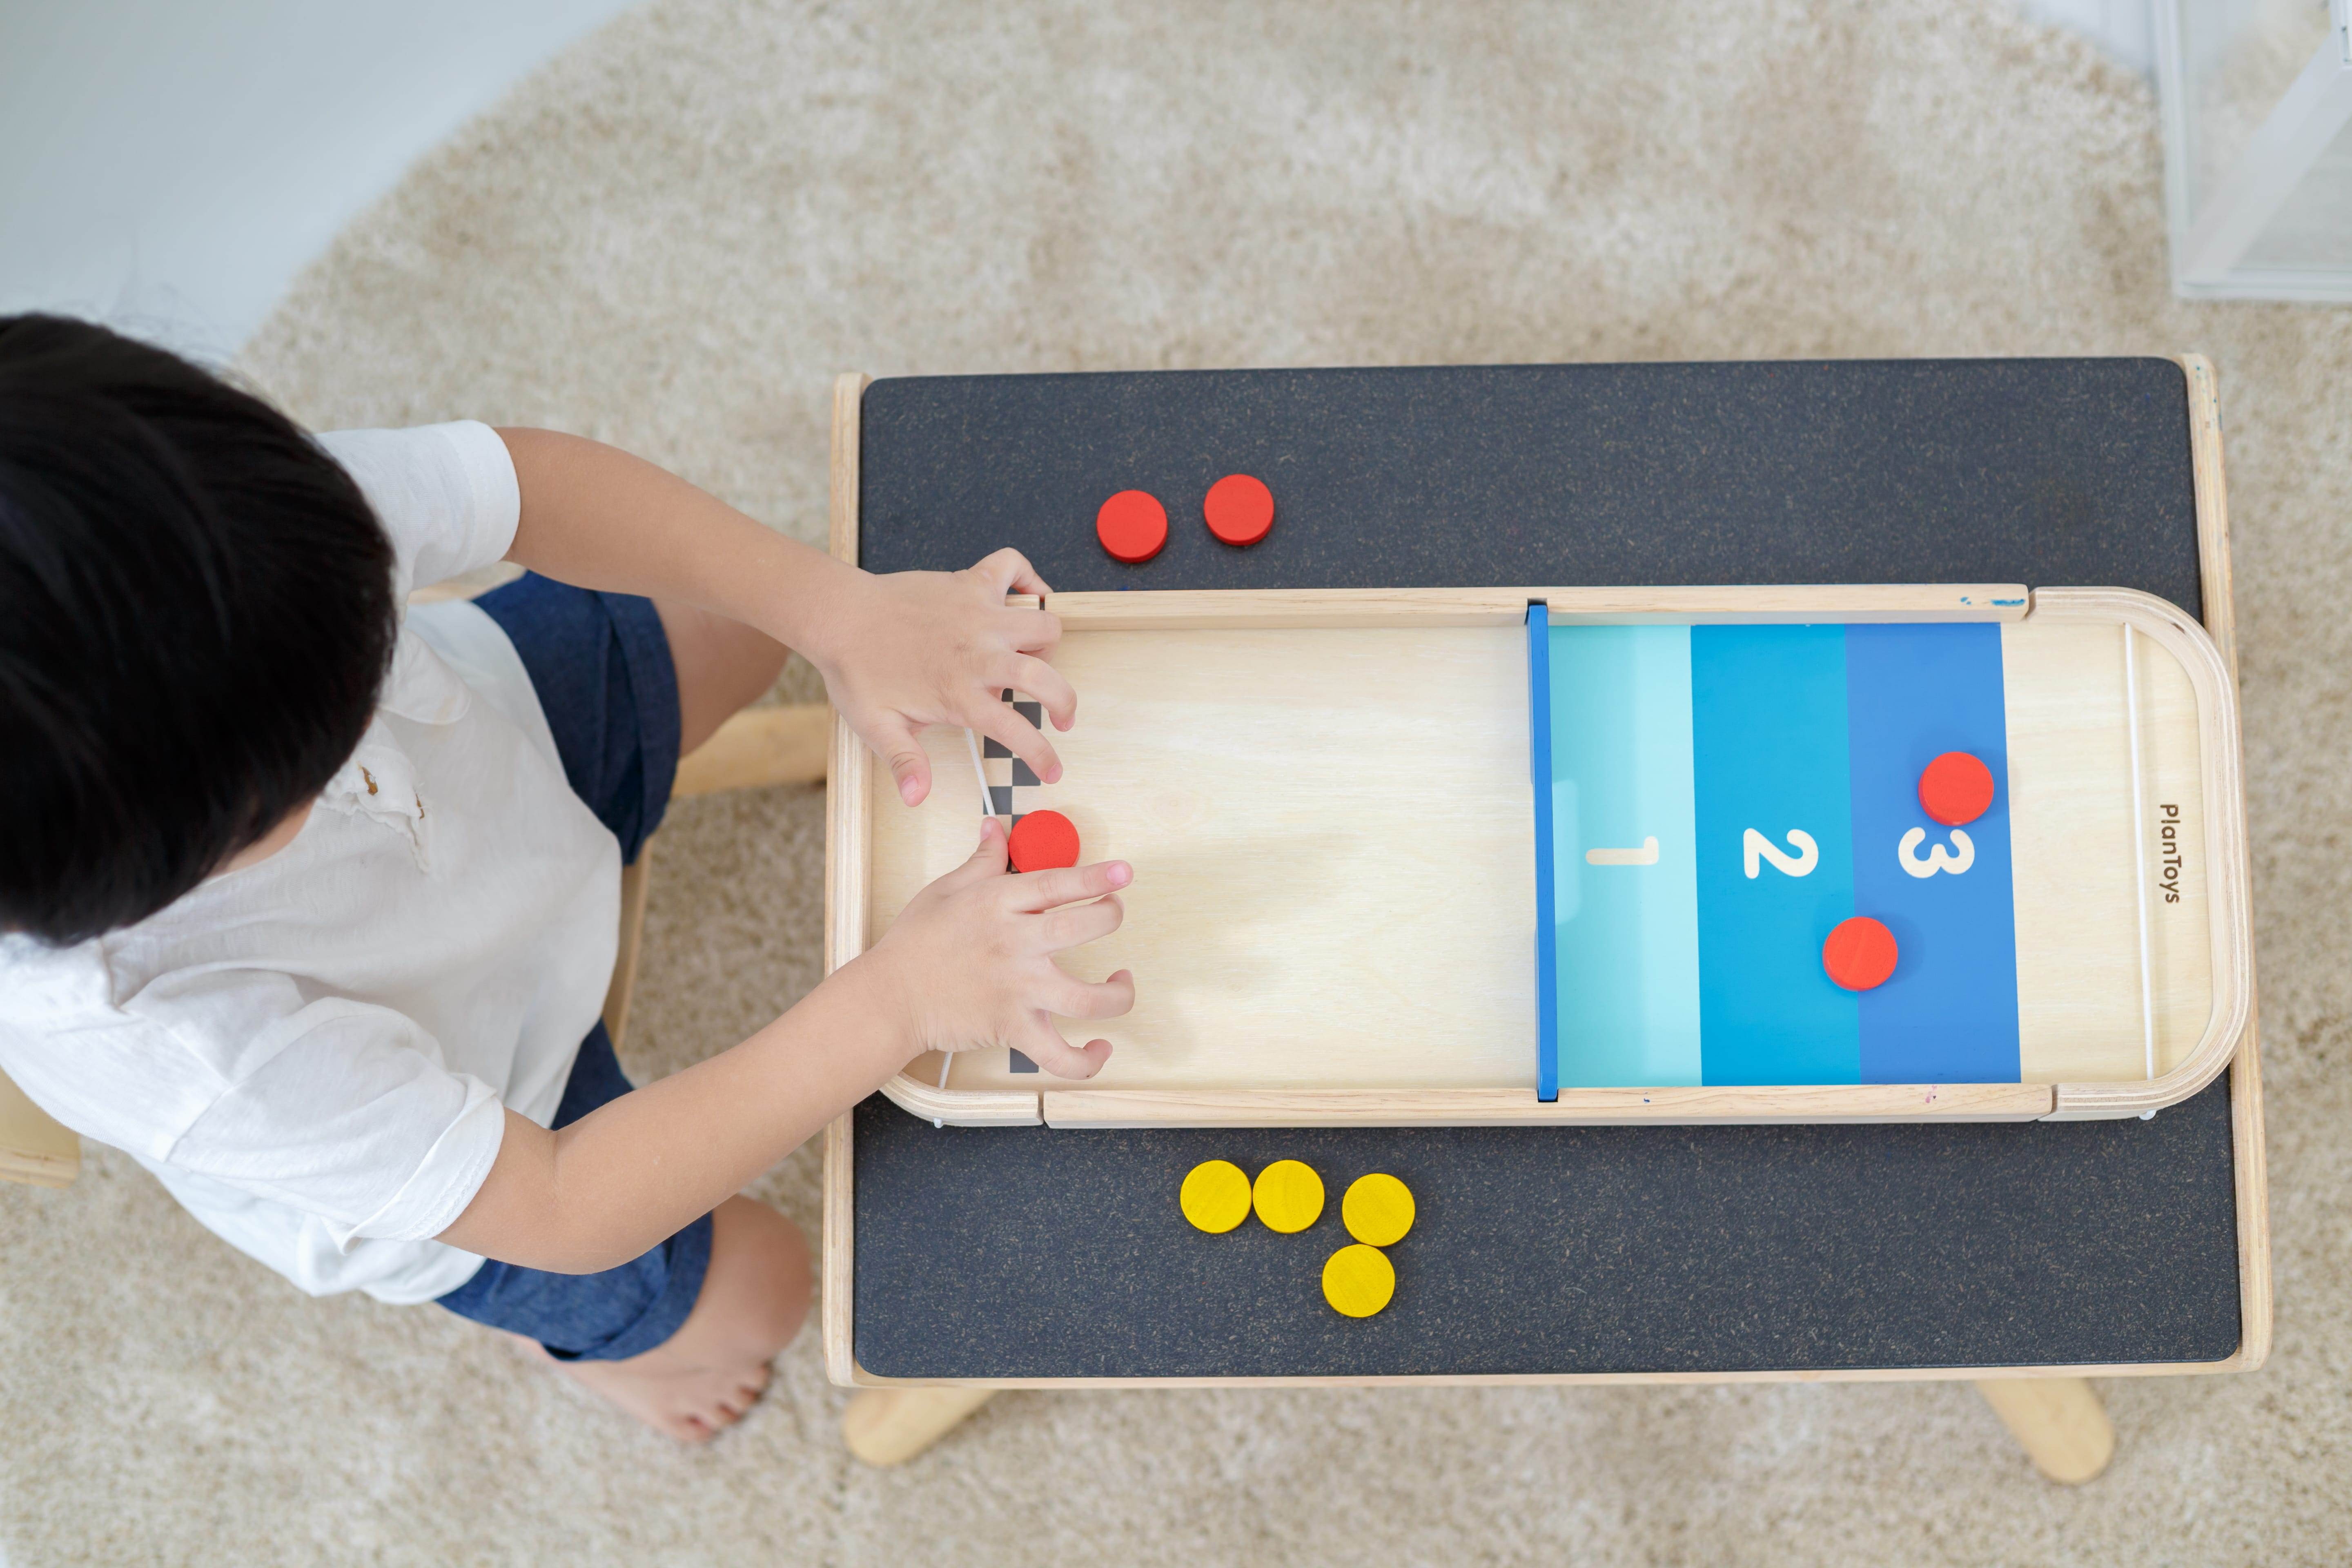 4626_PlanToys_2-IN-1_SHUFFLEBOARD-GAME_Game_and_Puzzles_Fine_Motor_Coordination_Social_Language_and_Communications_Mathematical_3yrs_Wooden_toys_Education_toys_Safety_Toys_Non-toxic_6.jpg